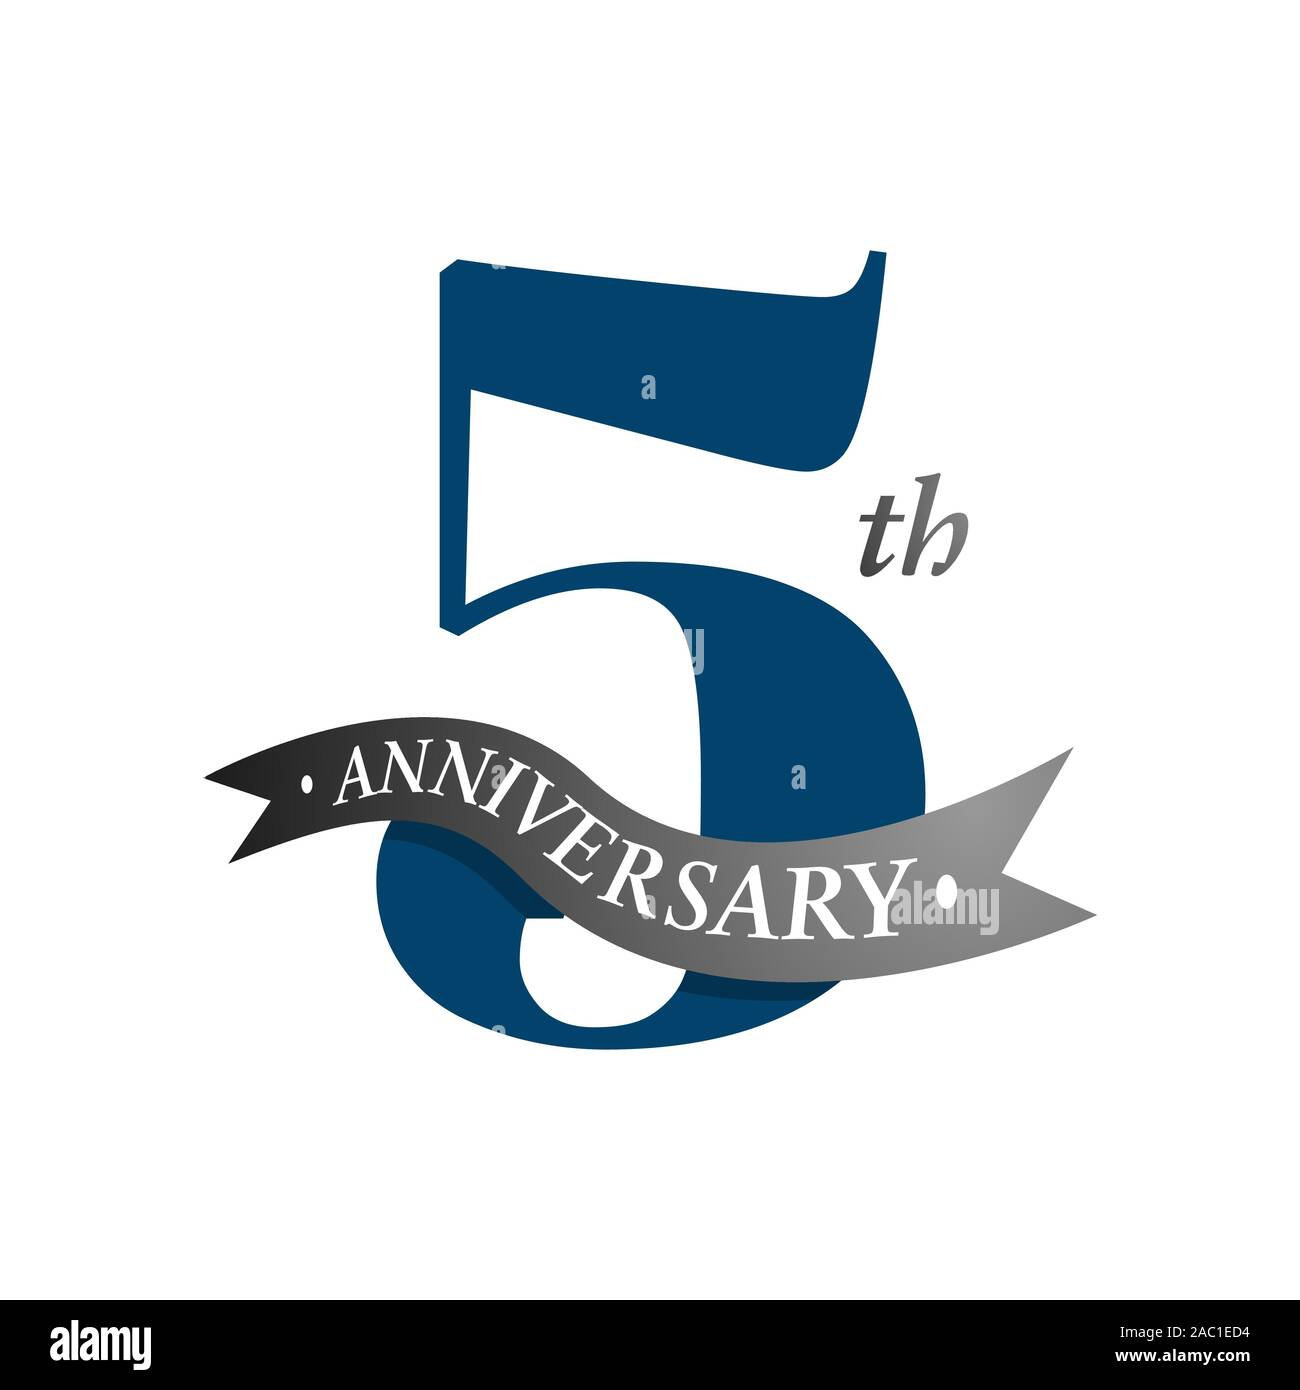 5th Anniversary Vector Logo Illustration 5 Years Anniversary Celebration Design Logotype With Number And Ribbon Five Years Celebration Event Sign Stock Vector Image Art Alamy